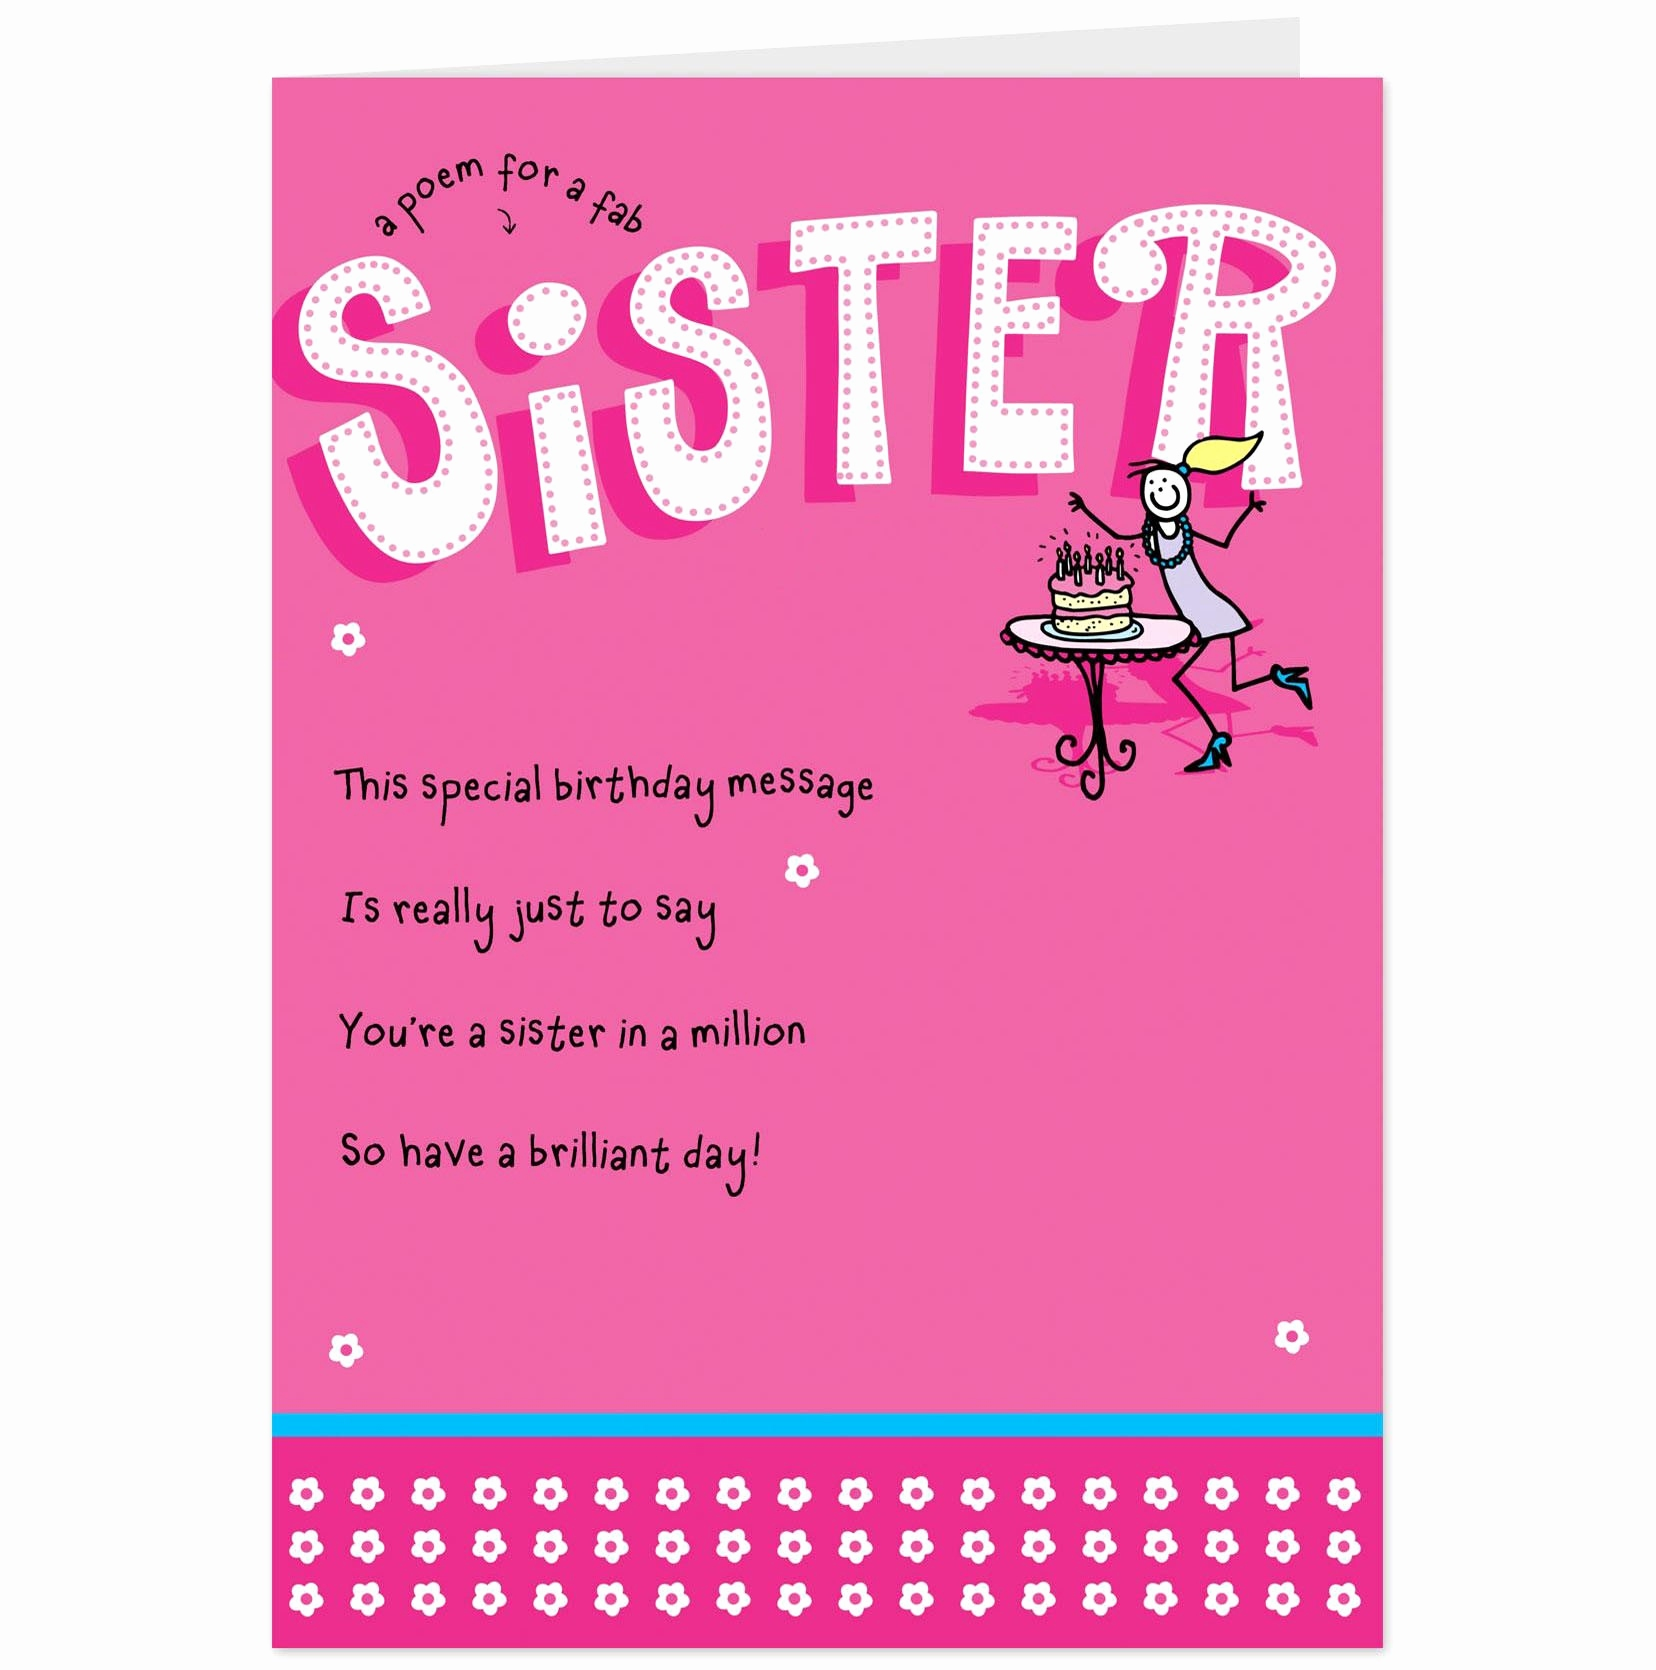 cool birthday quotes ; cool-birthday-cards-for-facebook-luxury-birthday-cards-best-birthday-quotes-wishes-cake-of-cool-birthday-cards-for-facebook